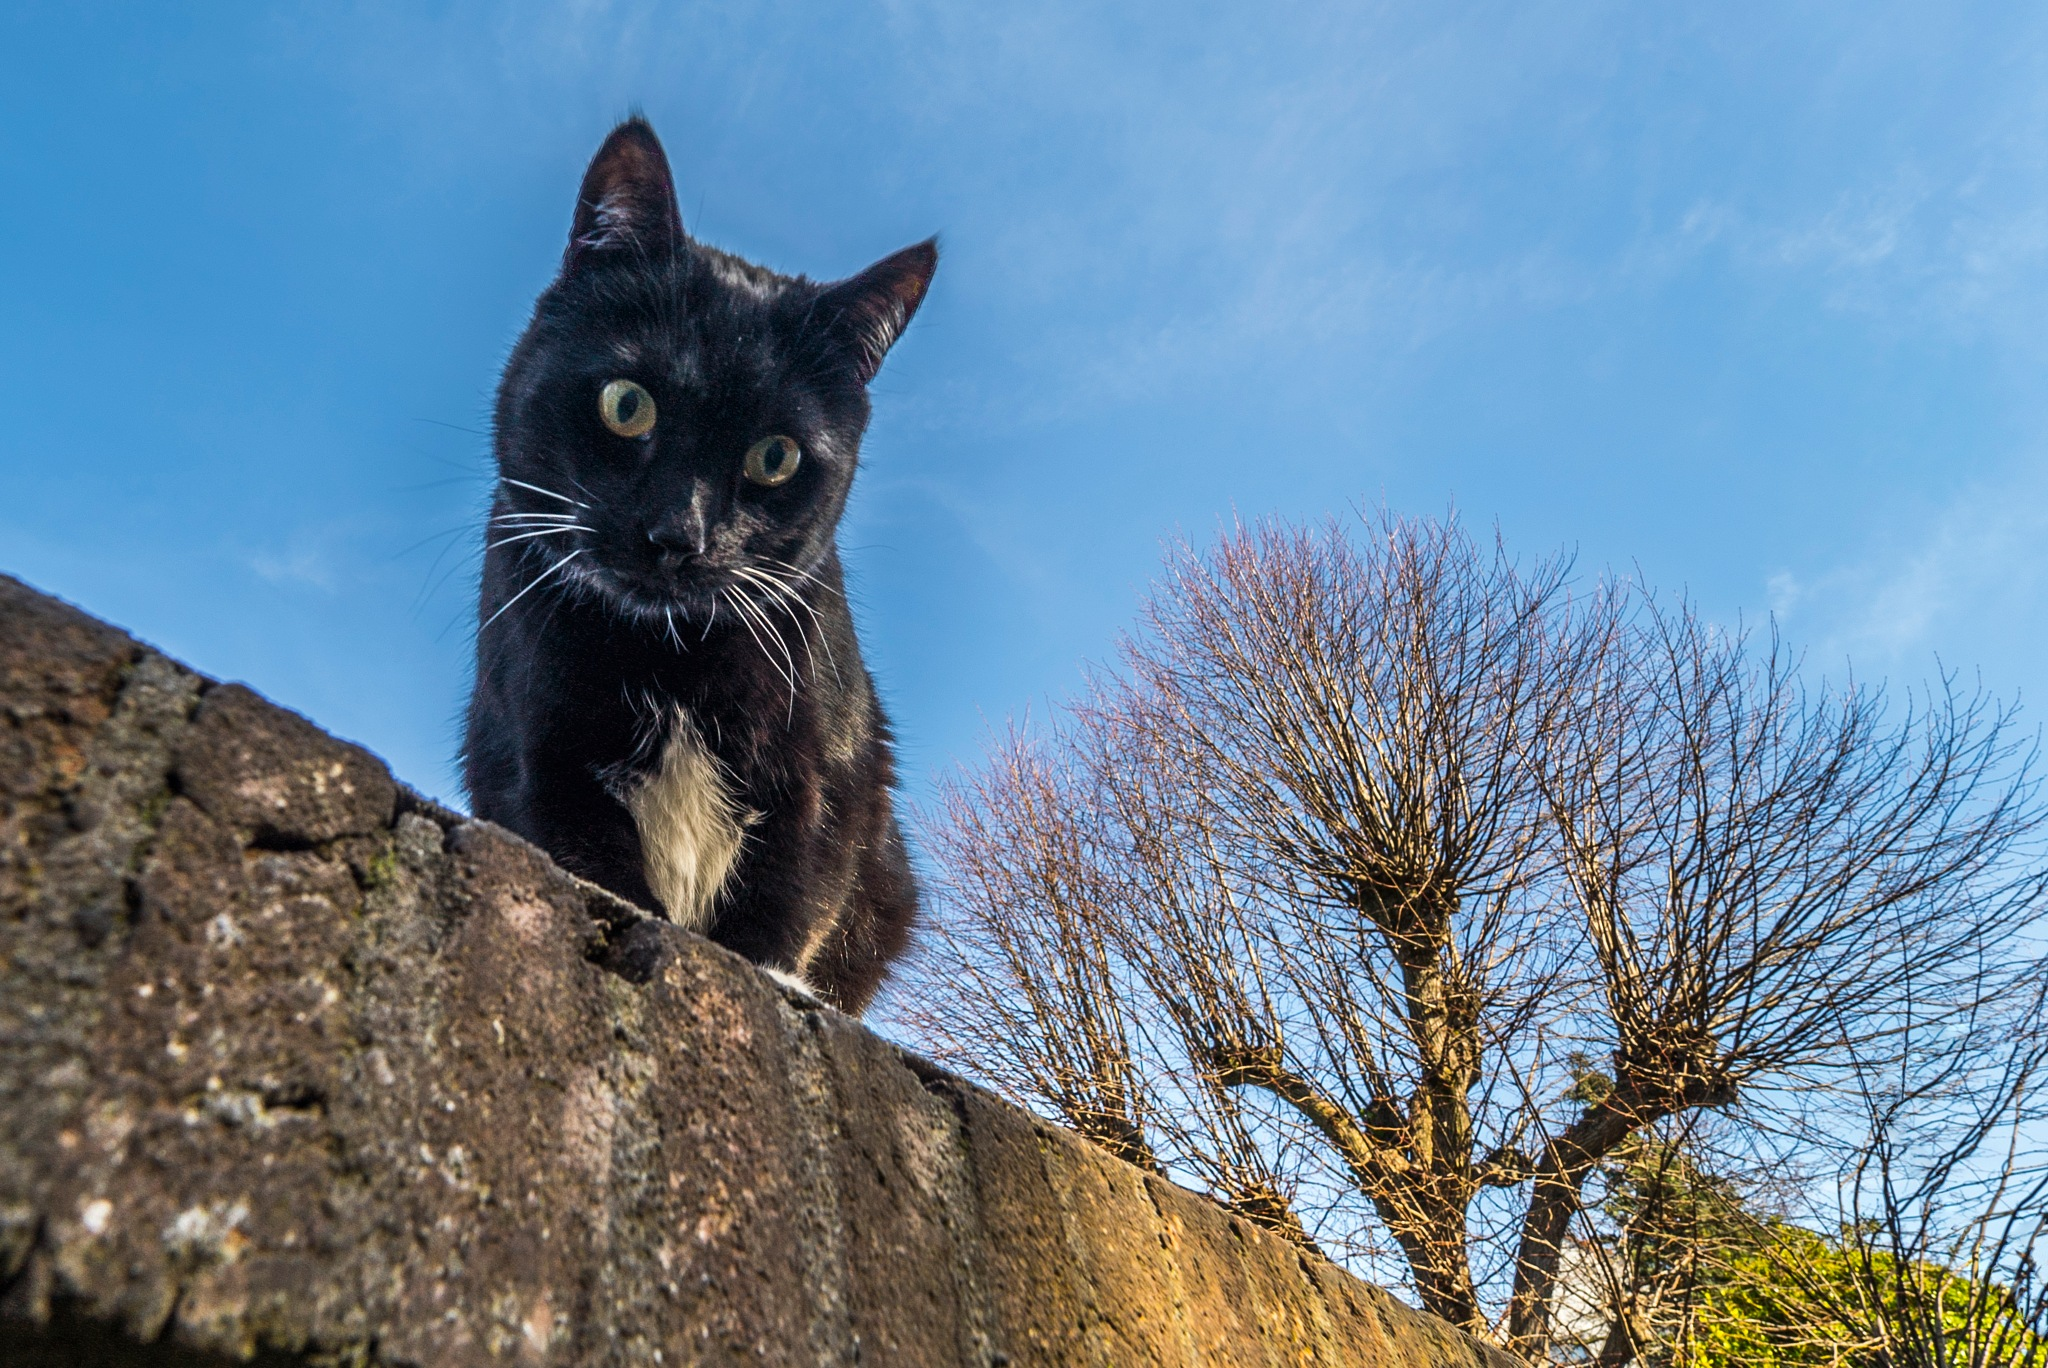 Cat on a Ledge by fred.leeflang.7